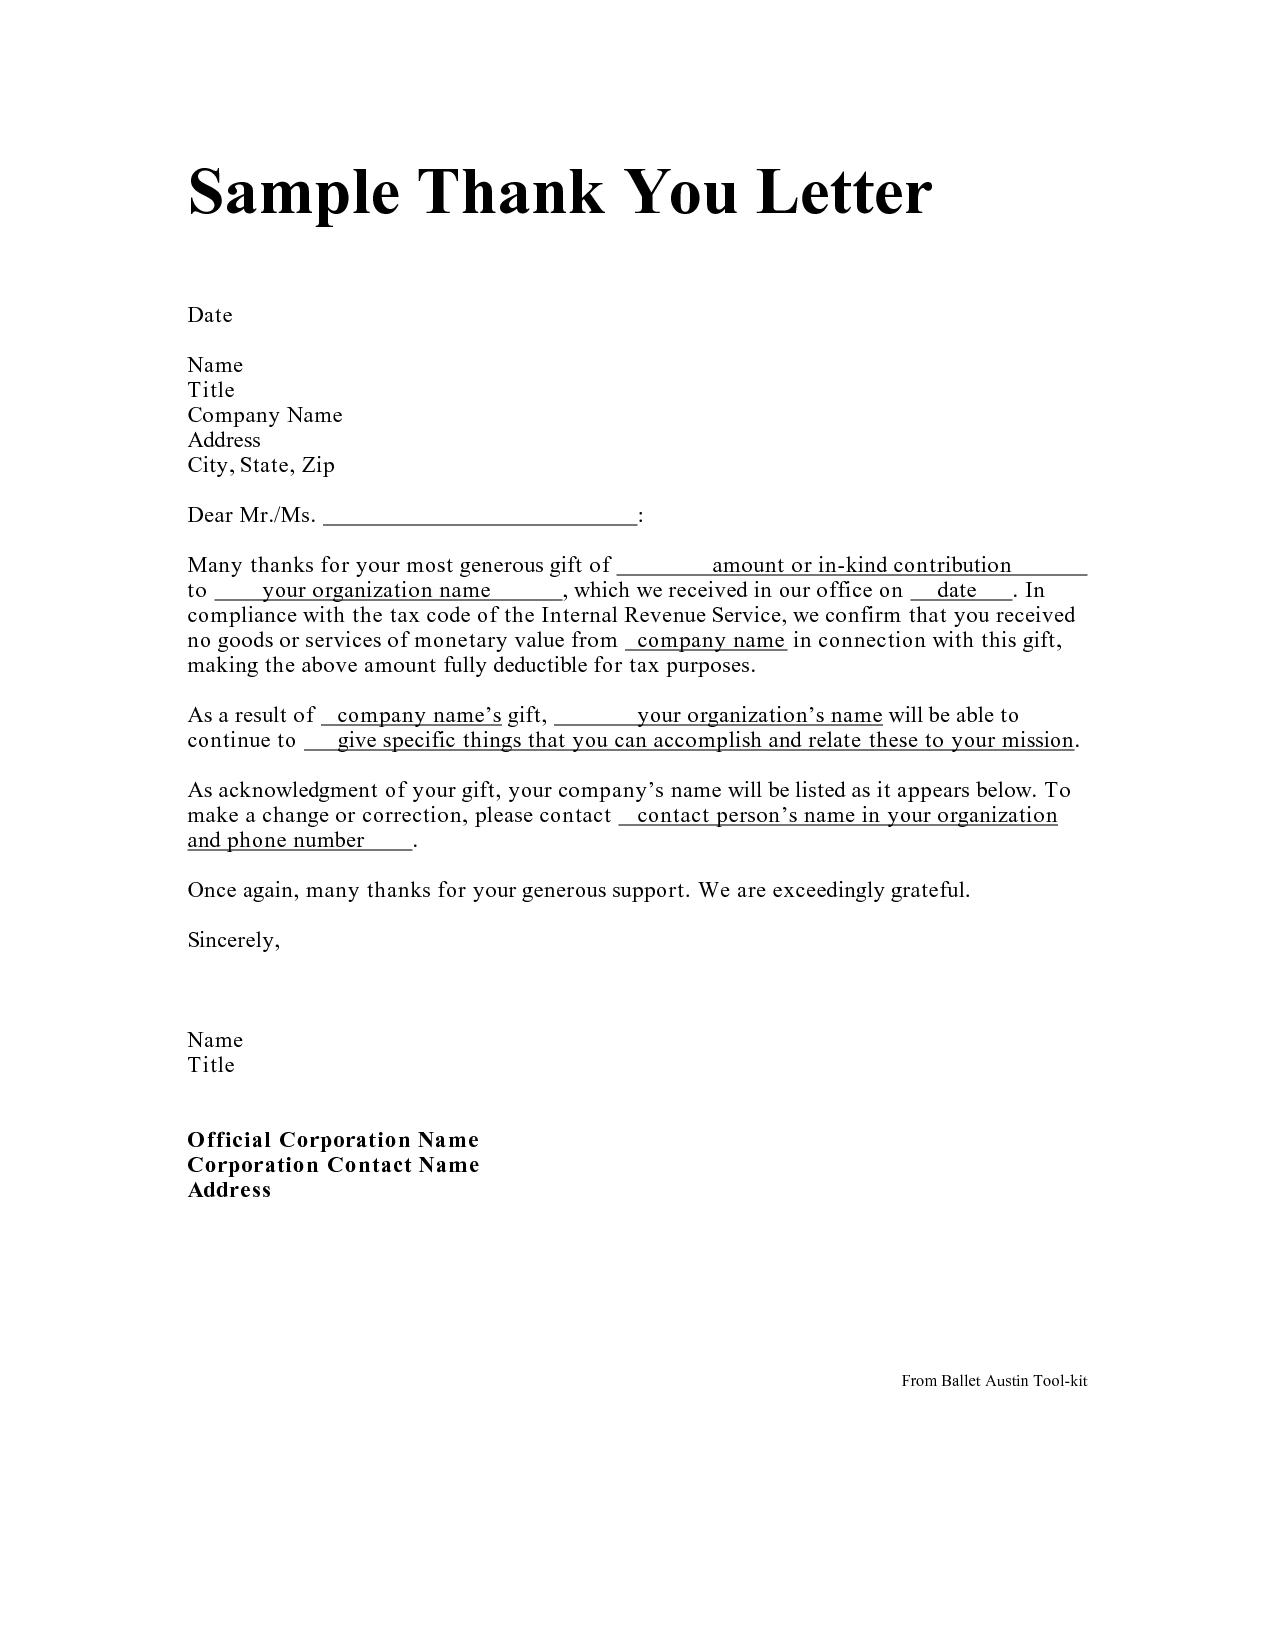 Sample Fundraising Letter Template - Personal Thank You Letter Personal Thank You Letter Samples